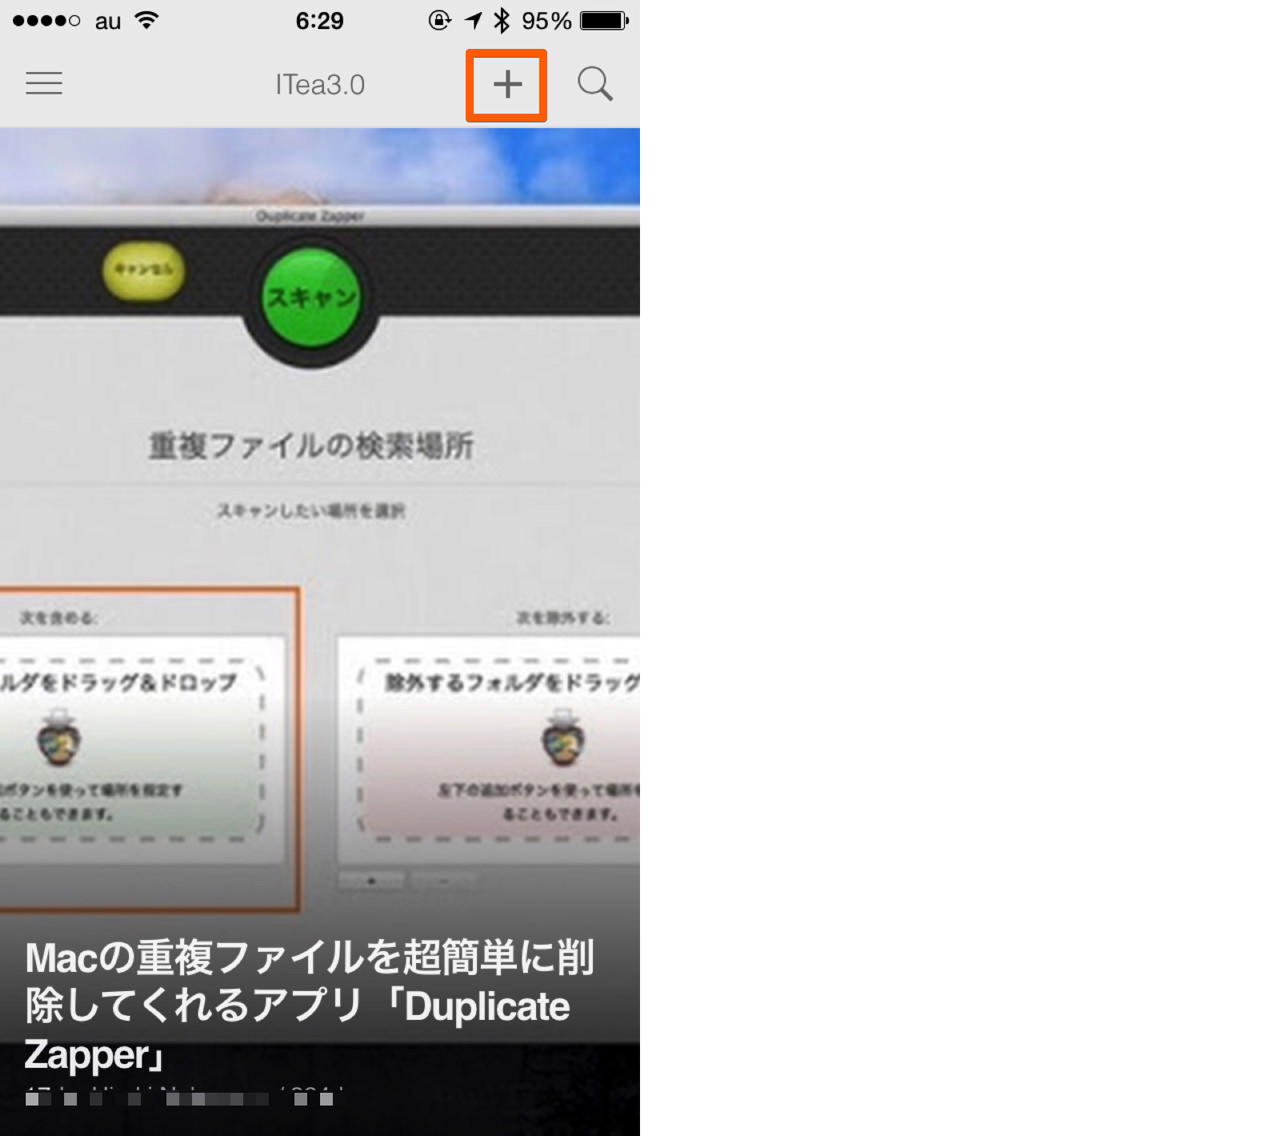 Iphone rss subscription3